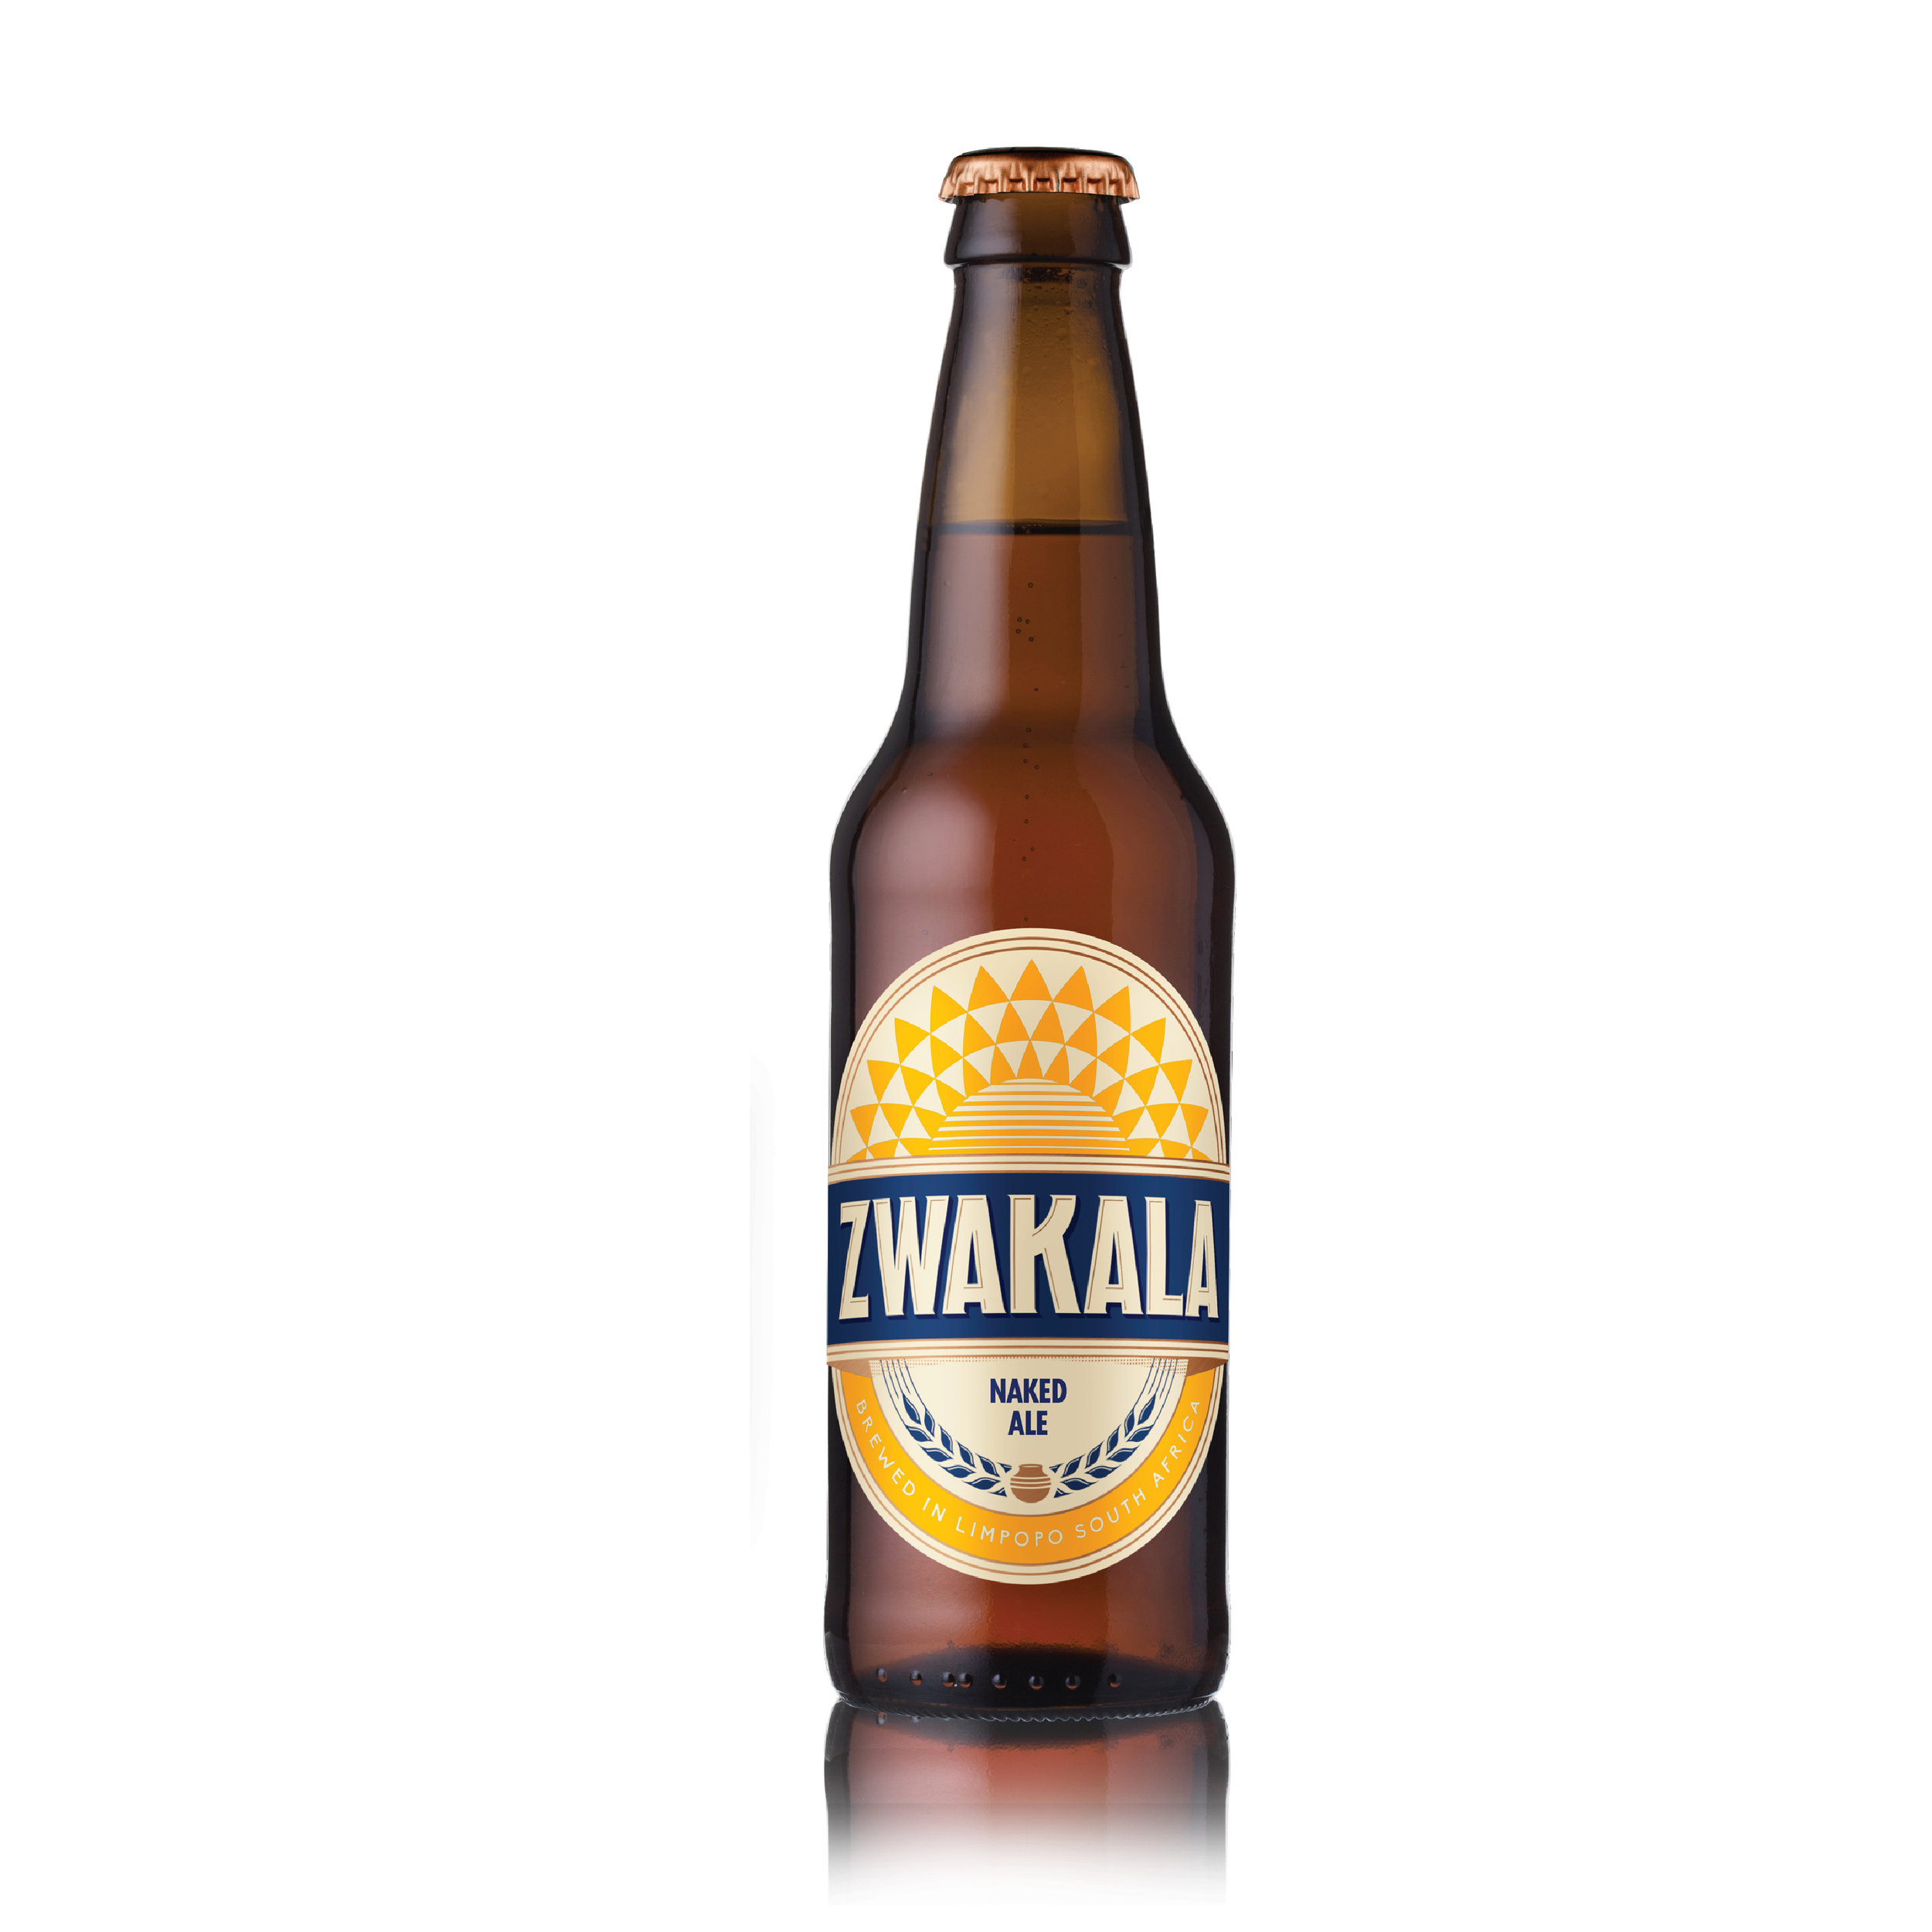 NAKED ALE - The Naked Ale is one sexy looking beer! It has a medium bitterness with light caramel and toffee flavours. It a sessionable beer and a favourite on the mountain. It won Silver at the 2017 South African National Beer Trophy Awards!To us, she's golden!5%ABV